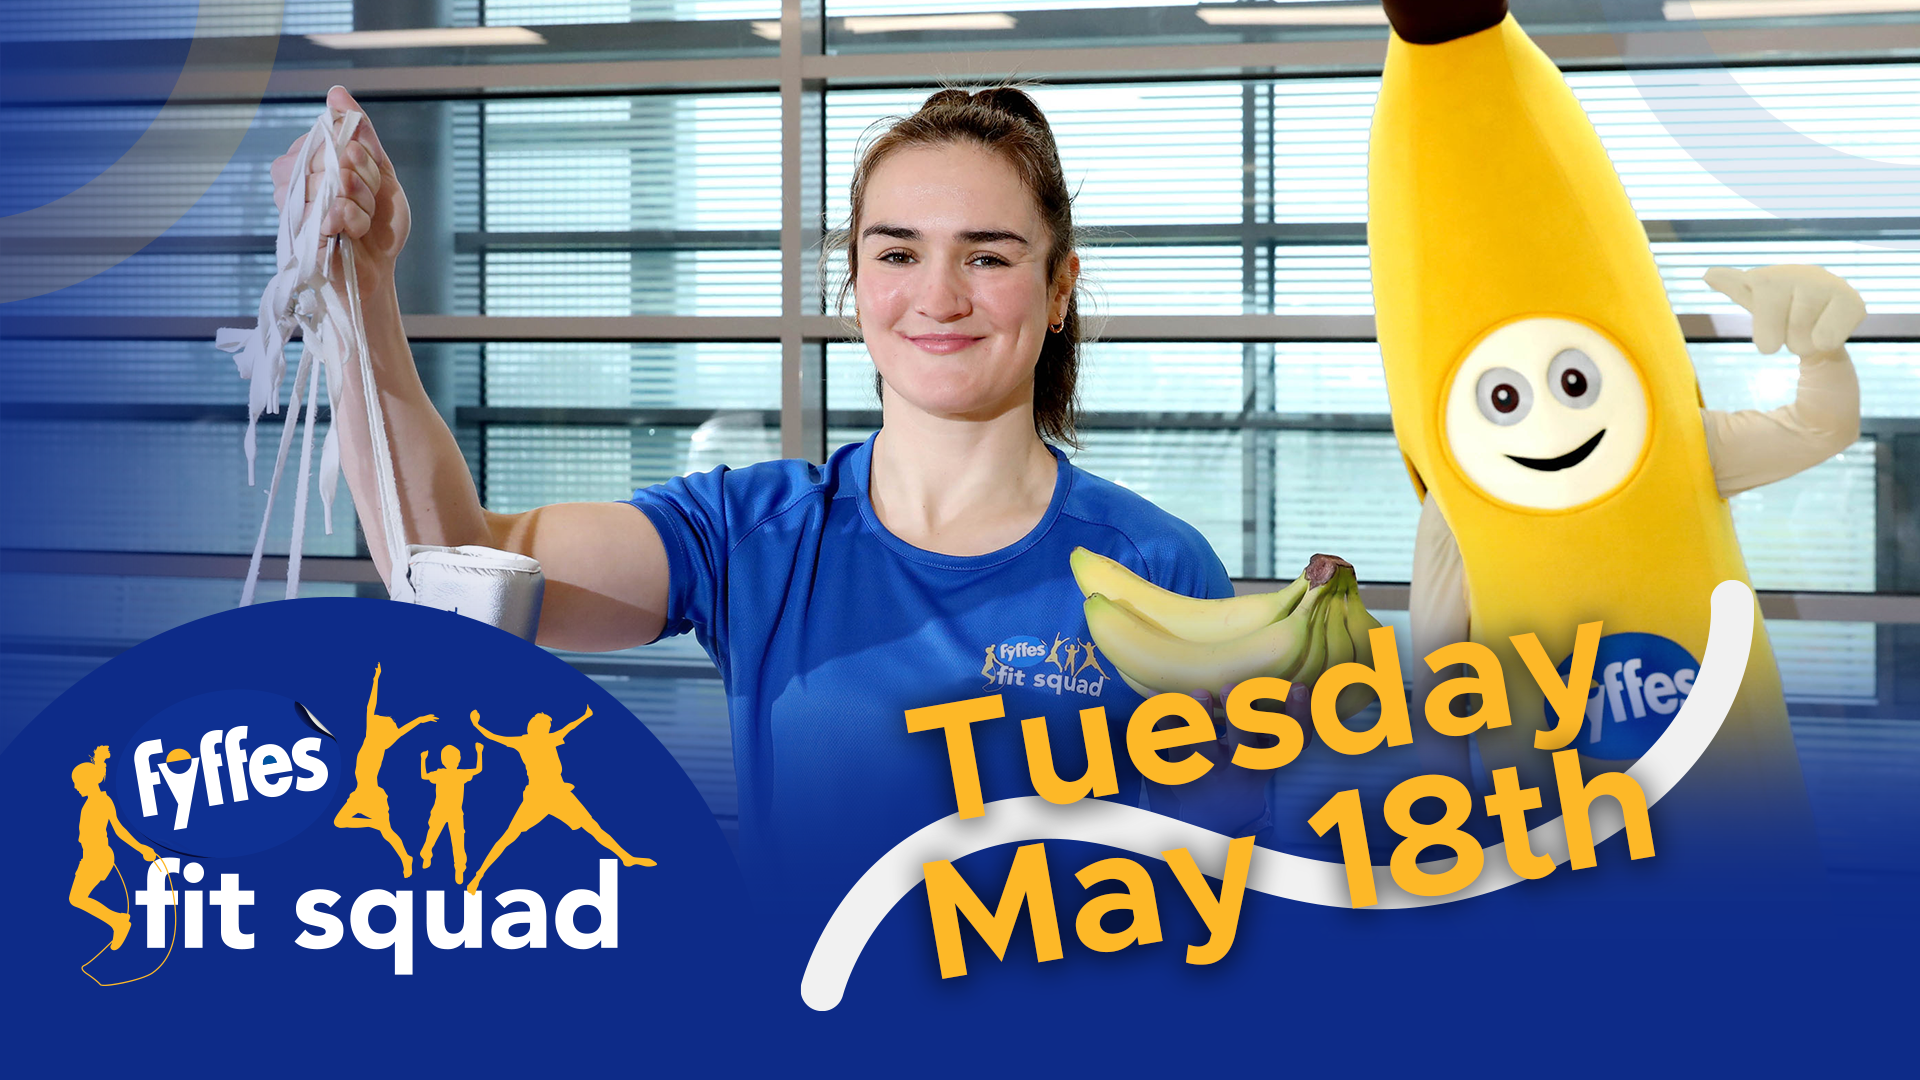 Fyffes Fit Squad Week 9 | Tuesday, May 18th 2021